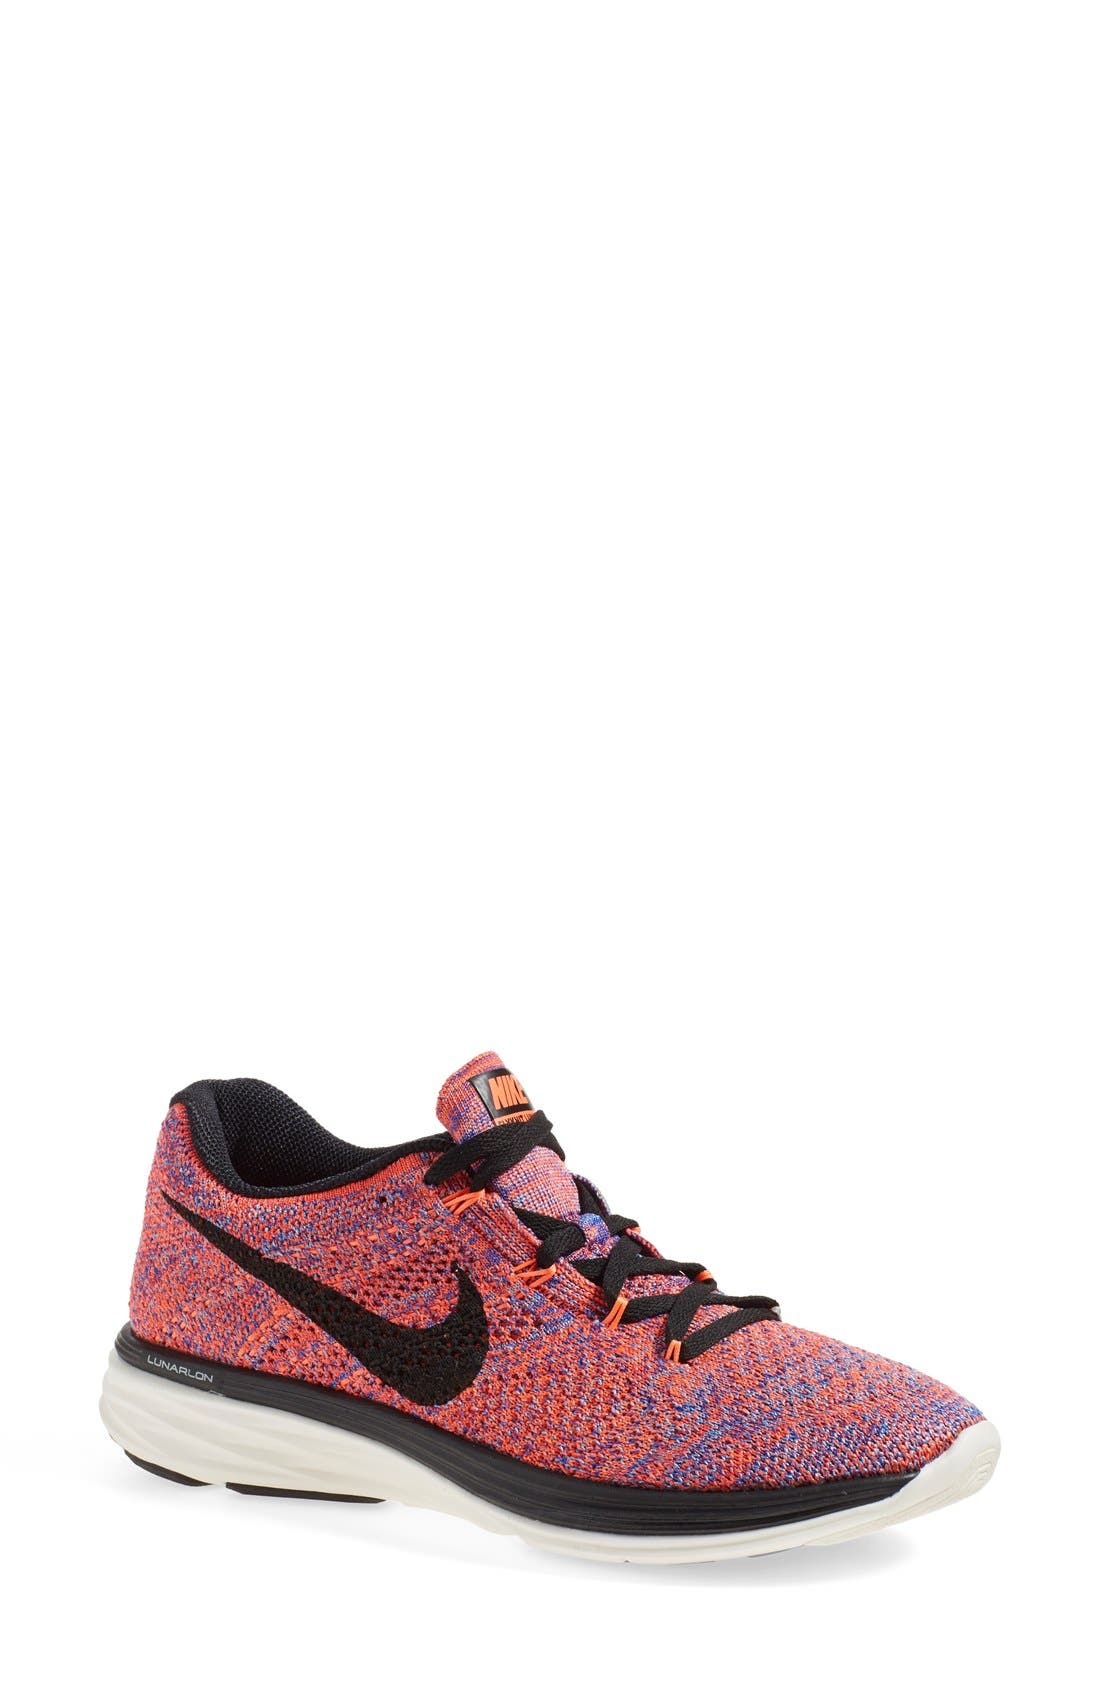 'Free Flyknit 5.0 TR' Training Shoe,                             Main thumbnail 9, color,